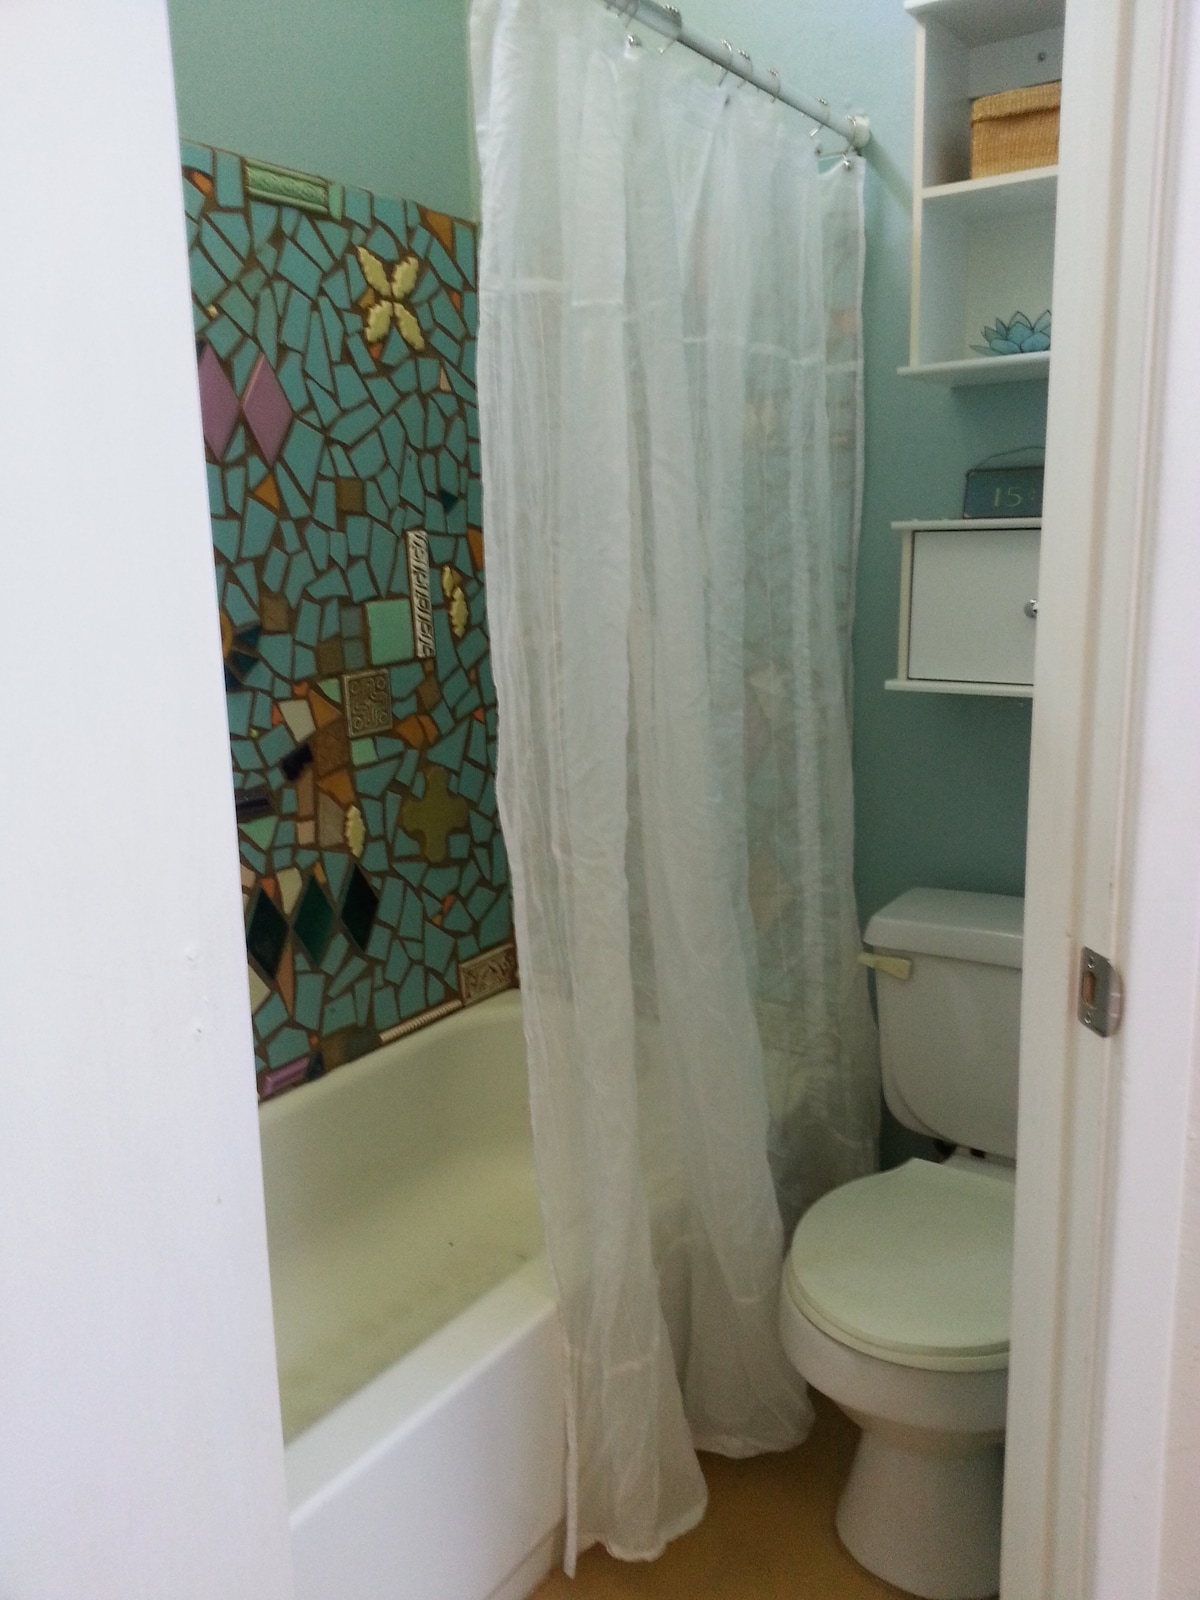 Bathroom with mosaic shower surround